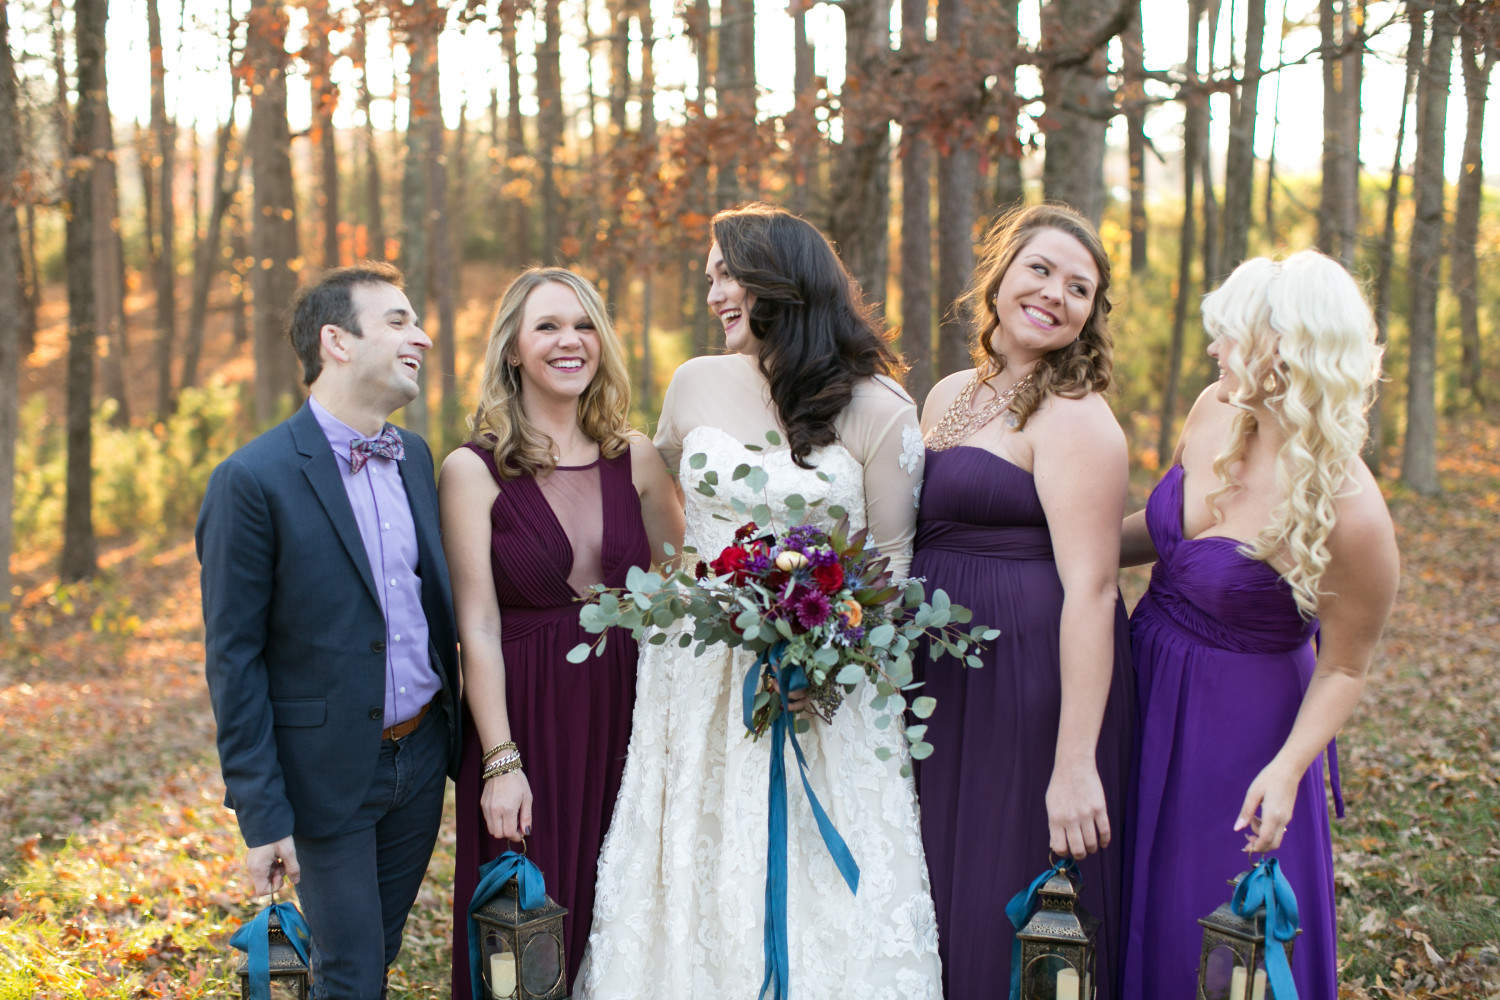 CarleyJoeyWed-364